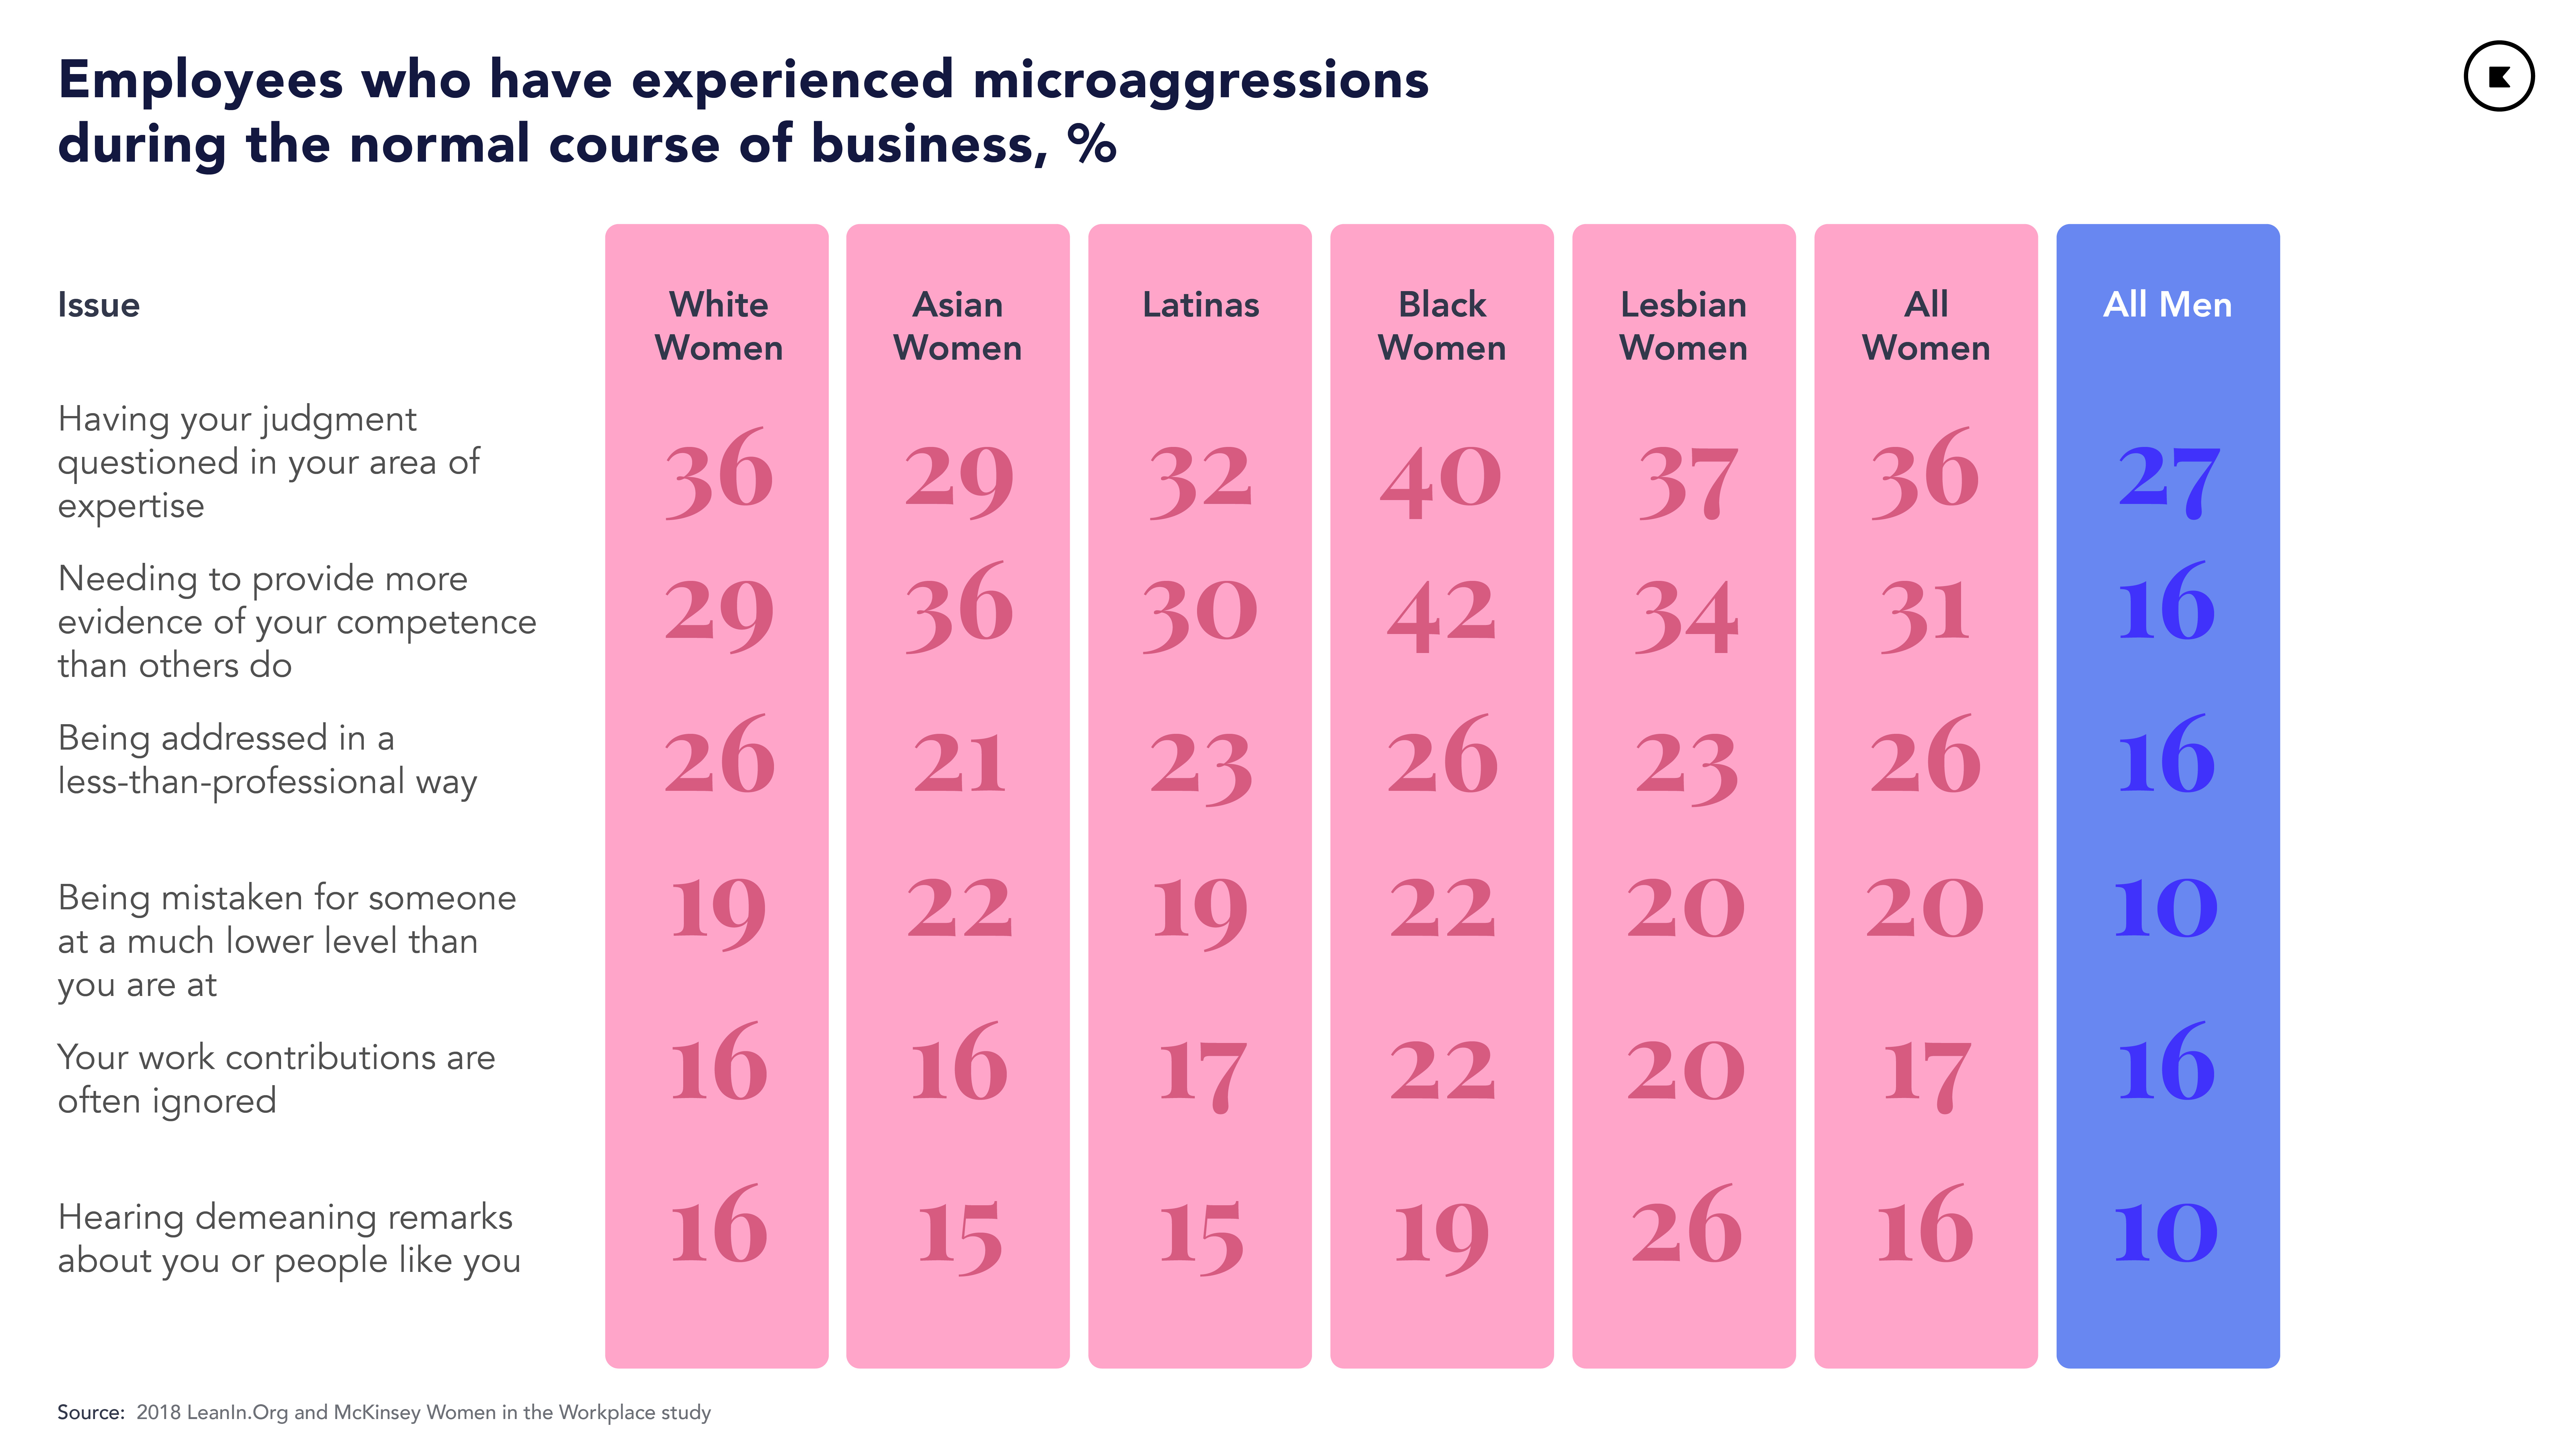 Percentage of employees facing microaggressions in the workplace